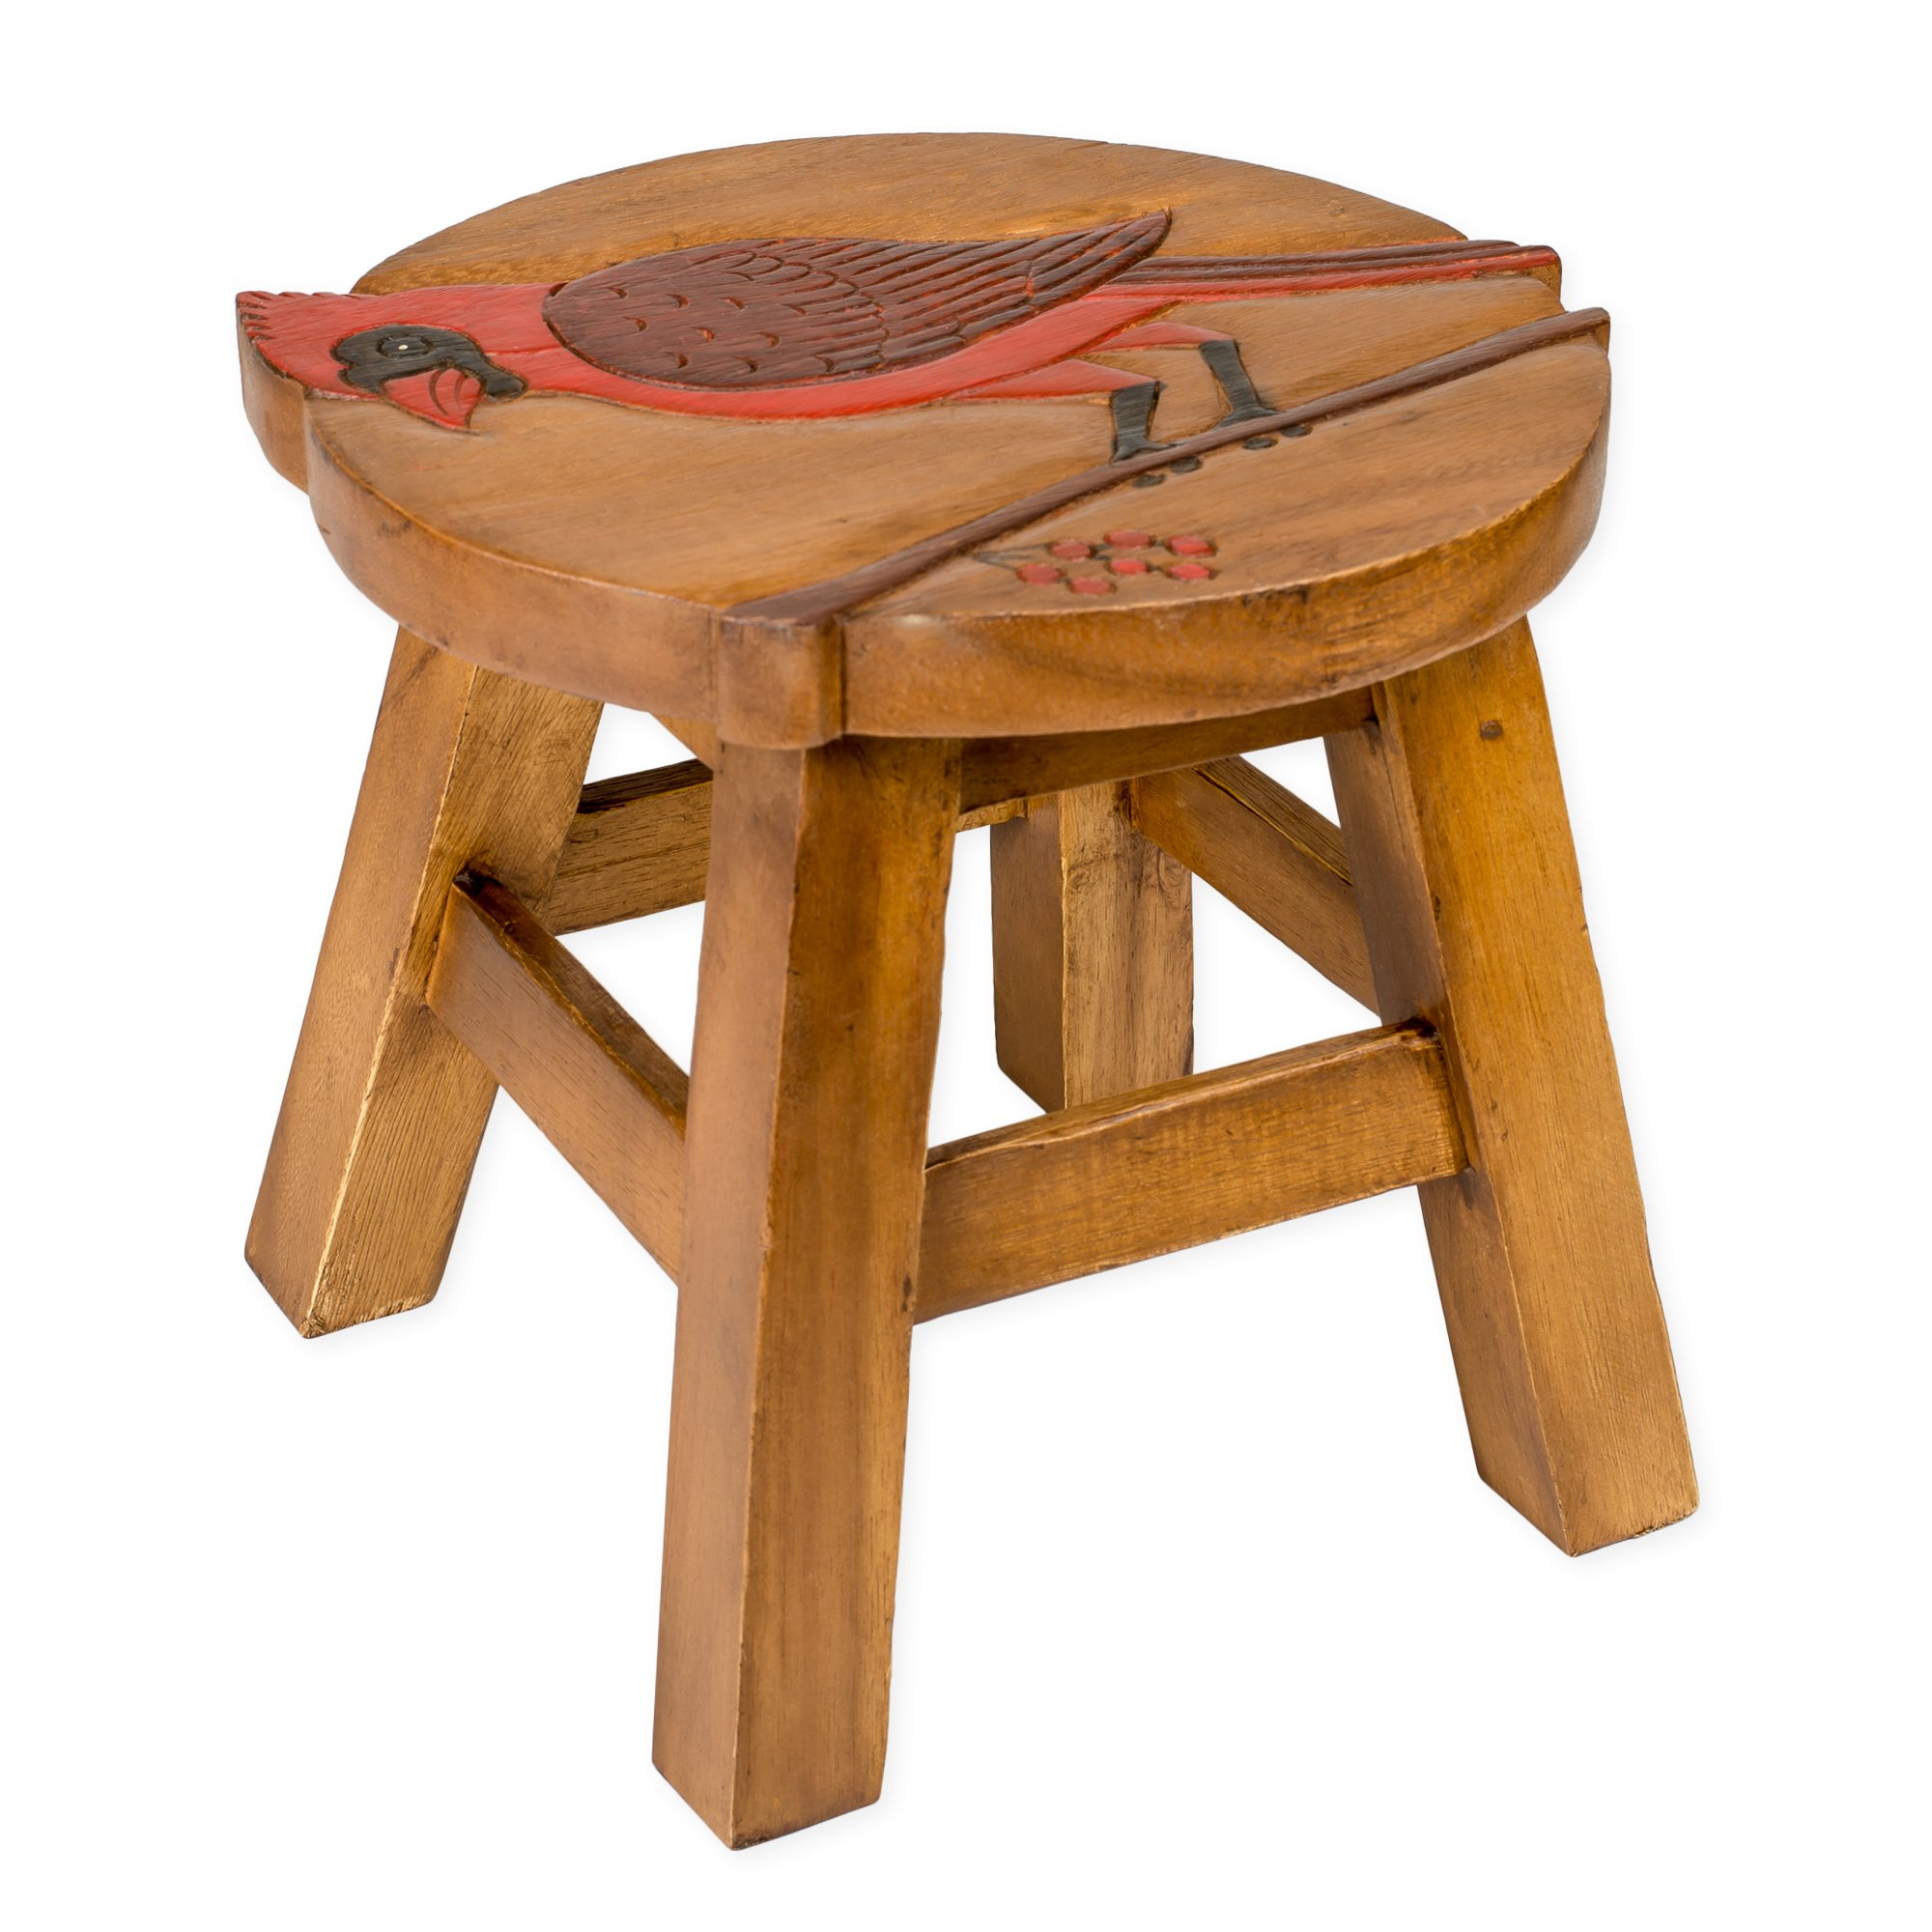 Cardinal Design Hand Carved Acacia Hardwood Decorative Short Stool